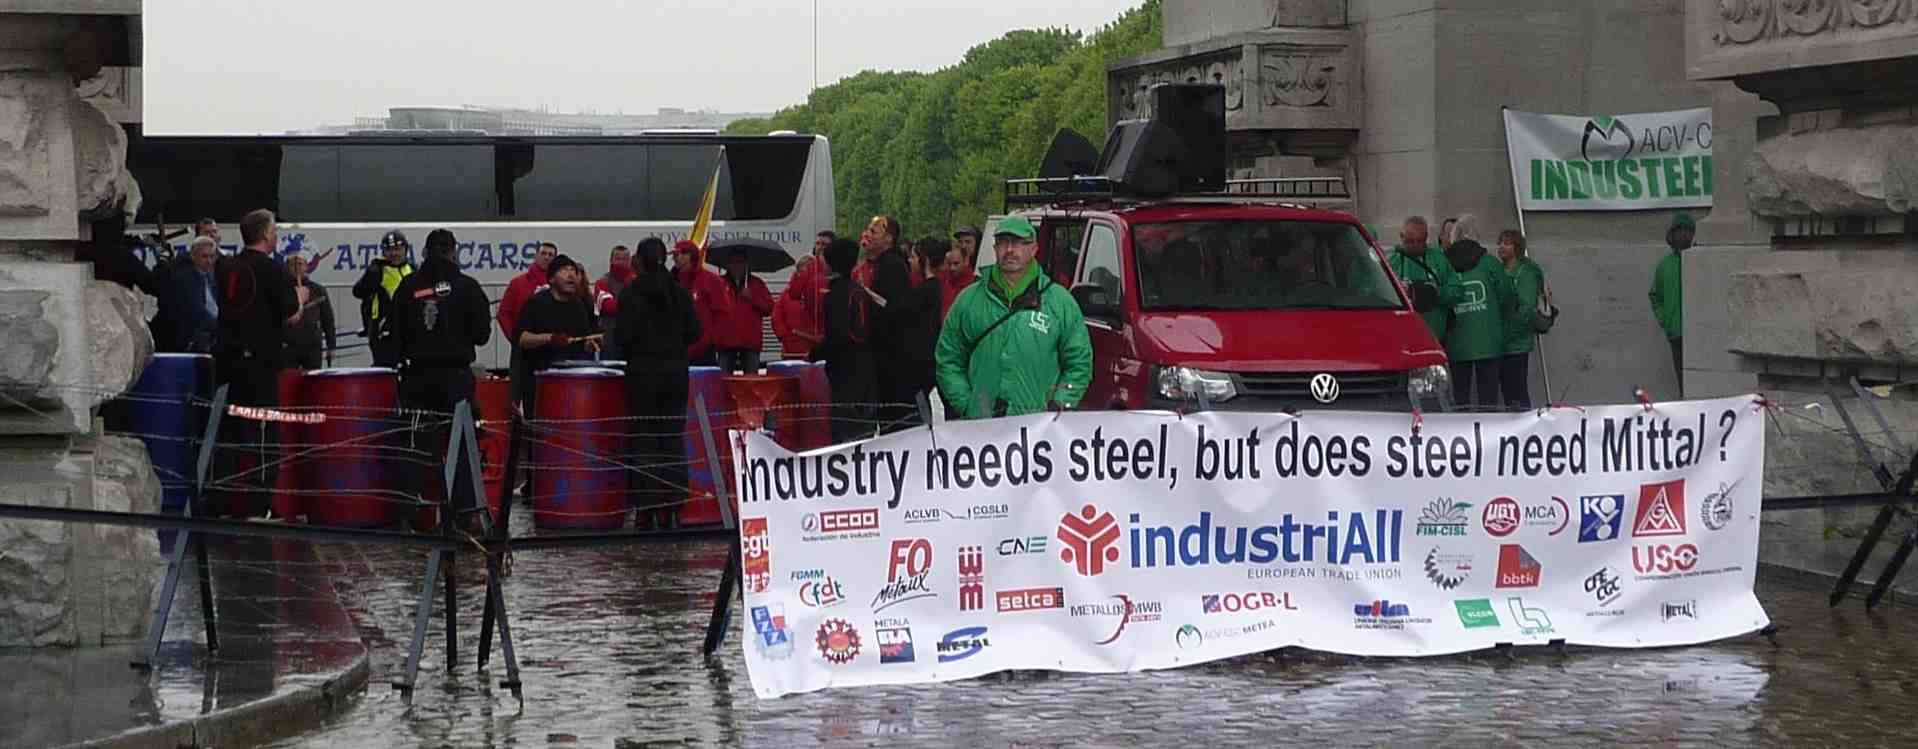 STEEL_DAY_2013_INDUSTRIALL_WEB